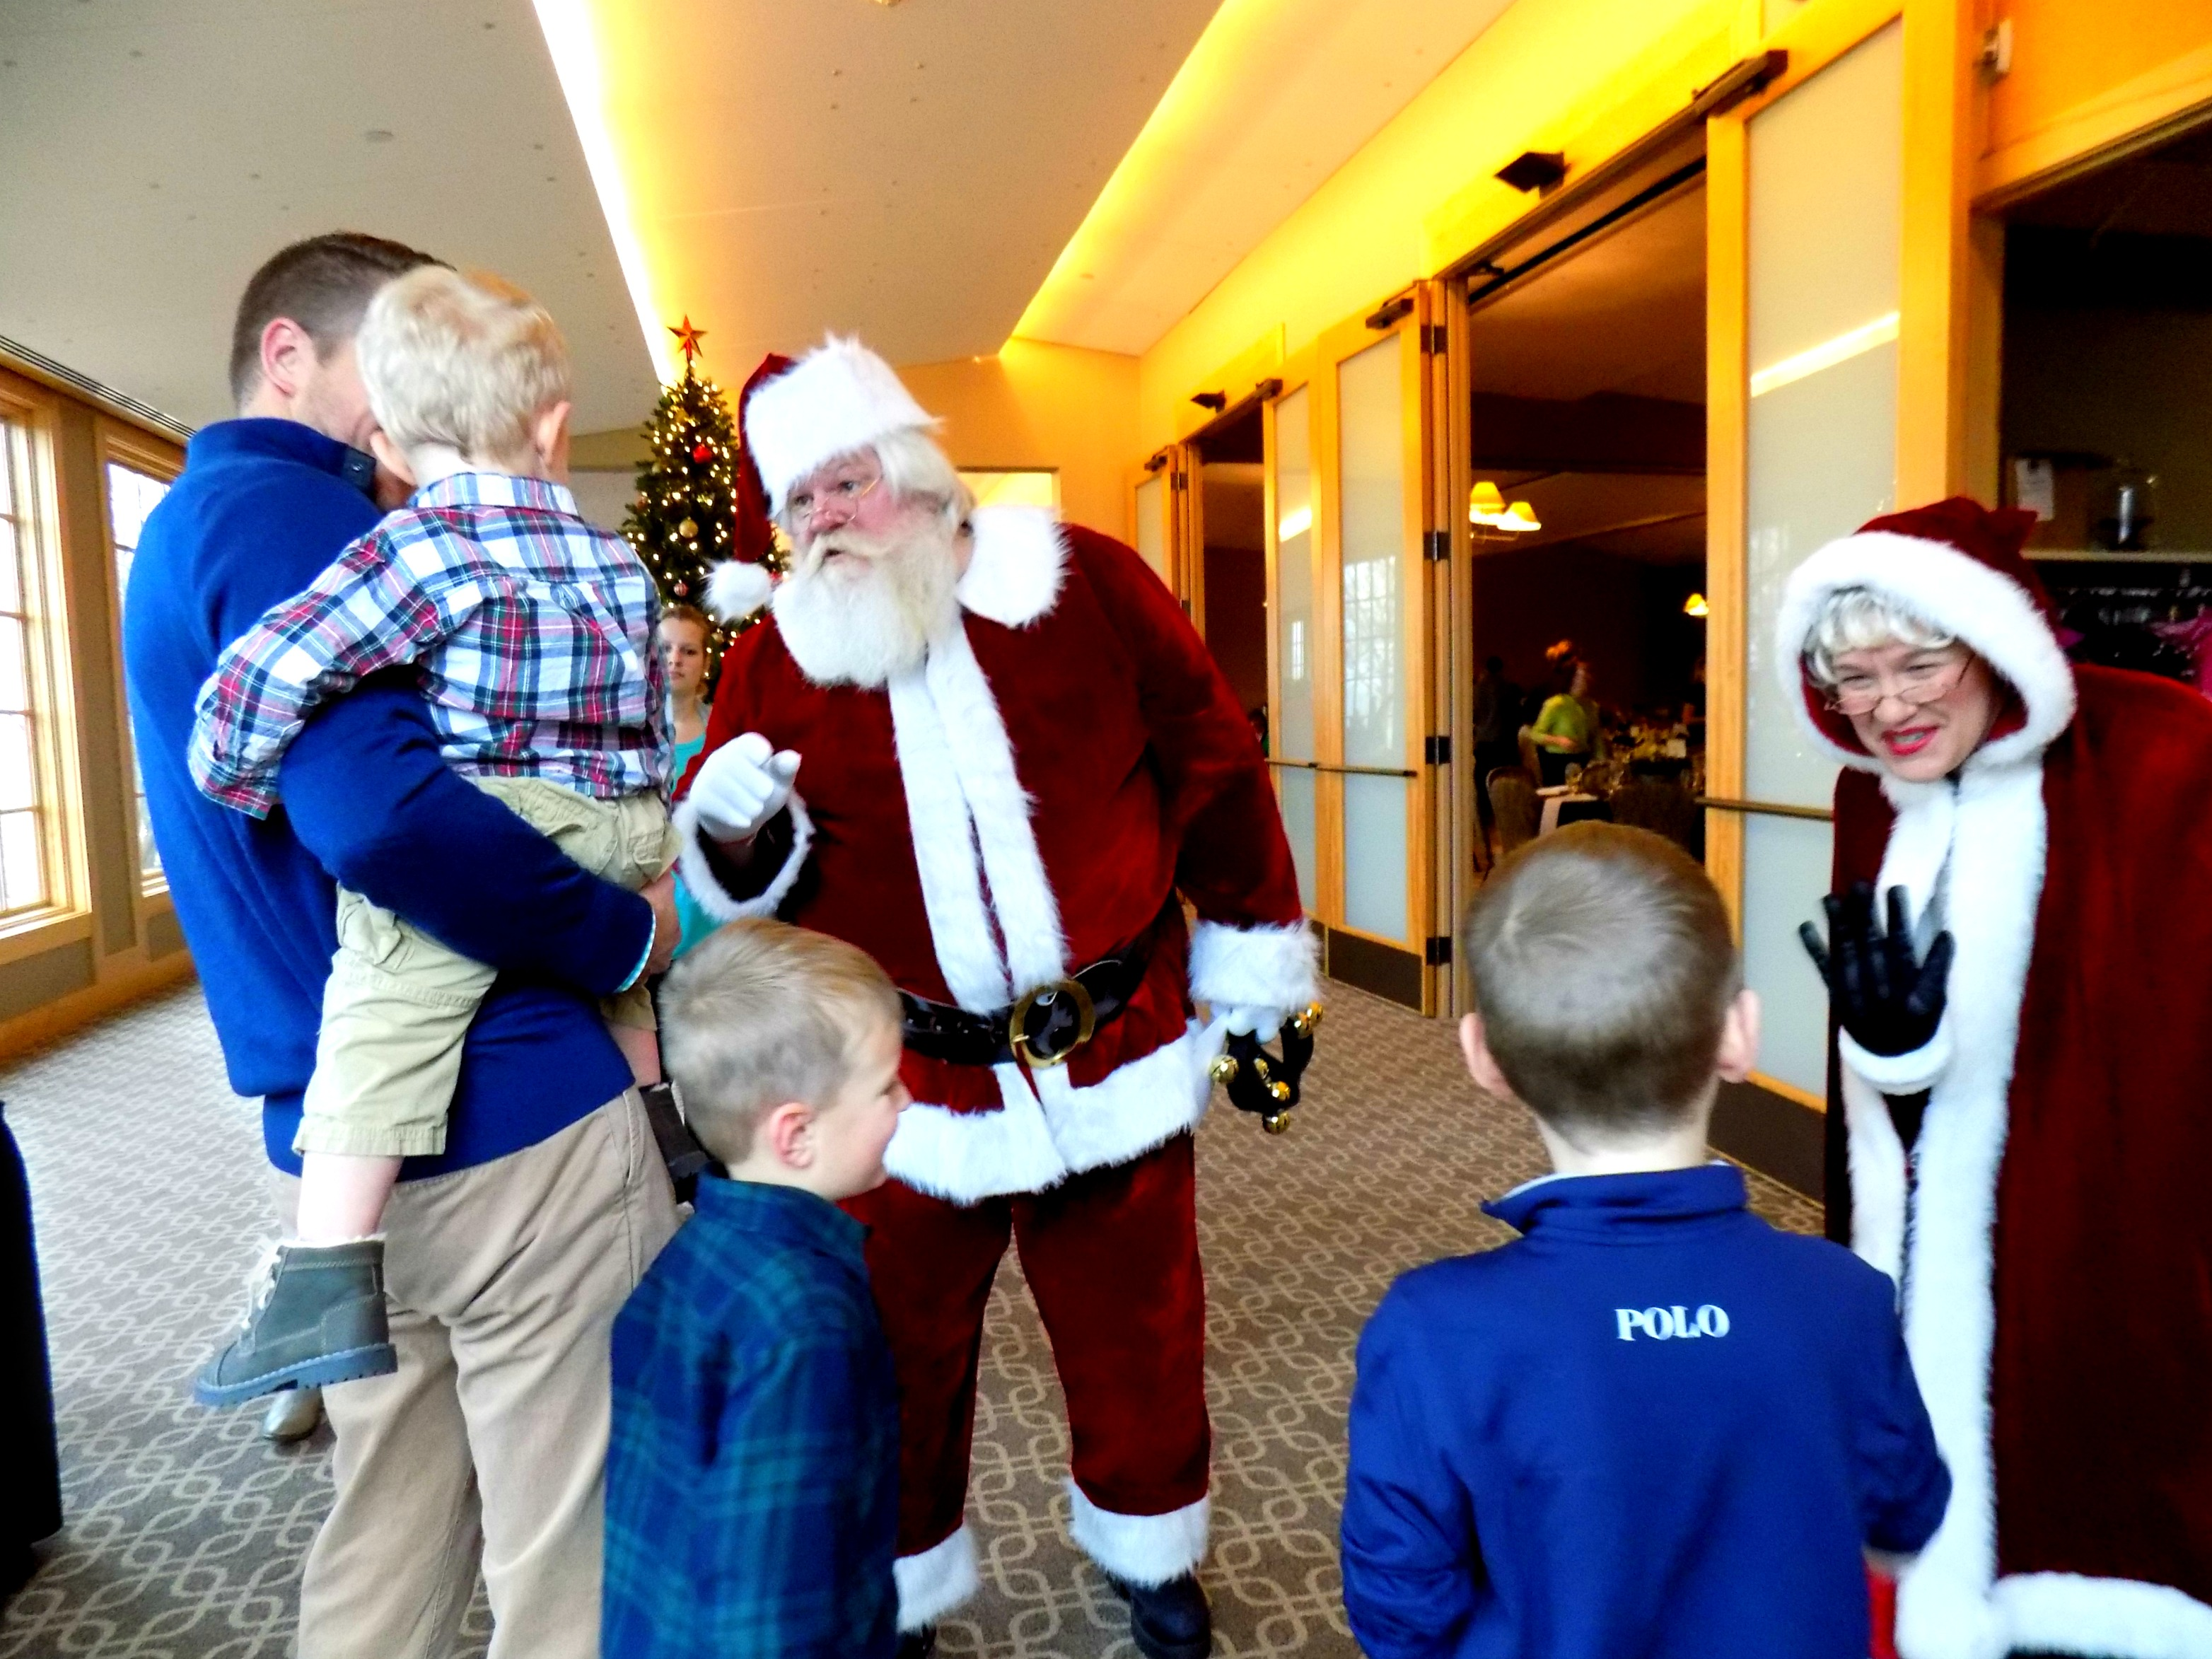 Santa and Mrs. Clause greeting children at a holiday party at Hazeltine National Golf Club